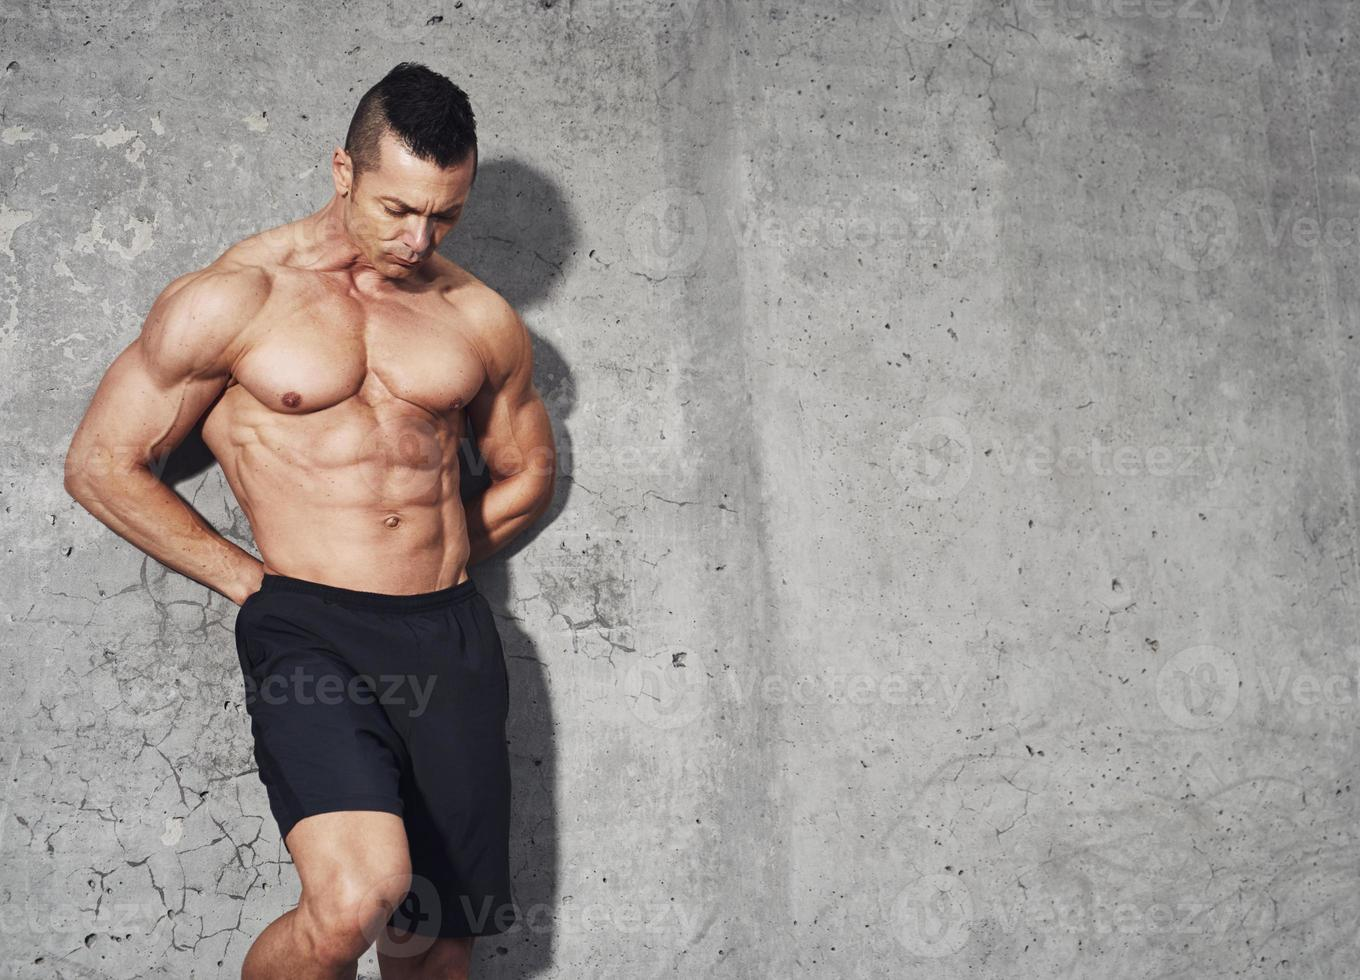 Male fitness model with abdominal muscles photo